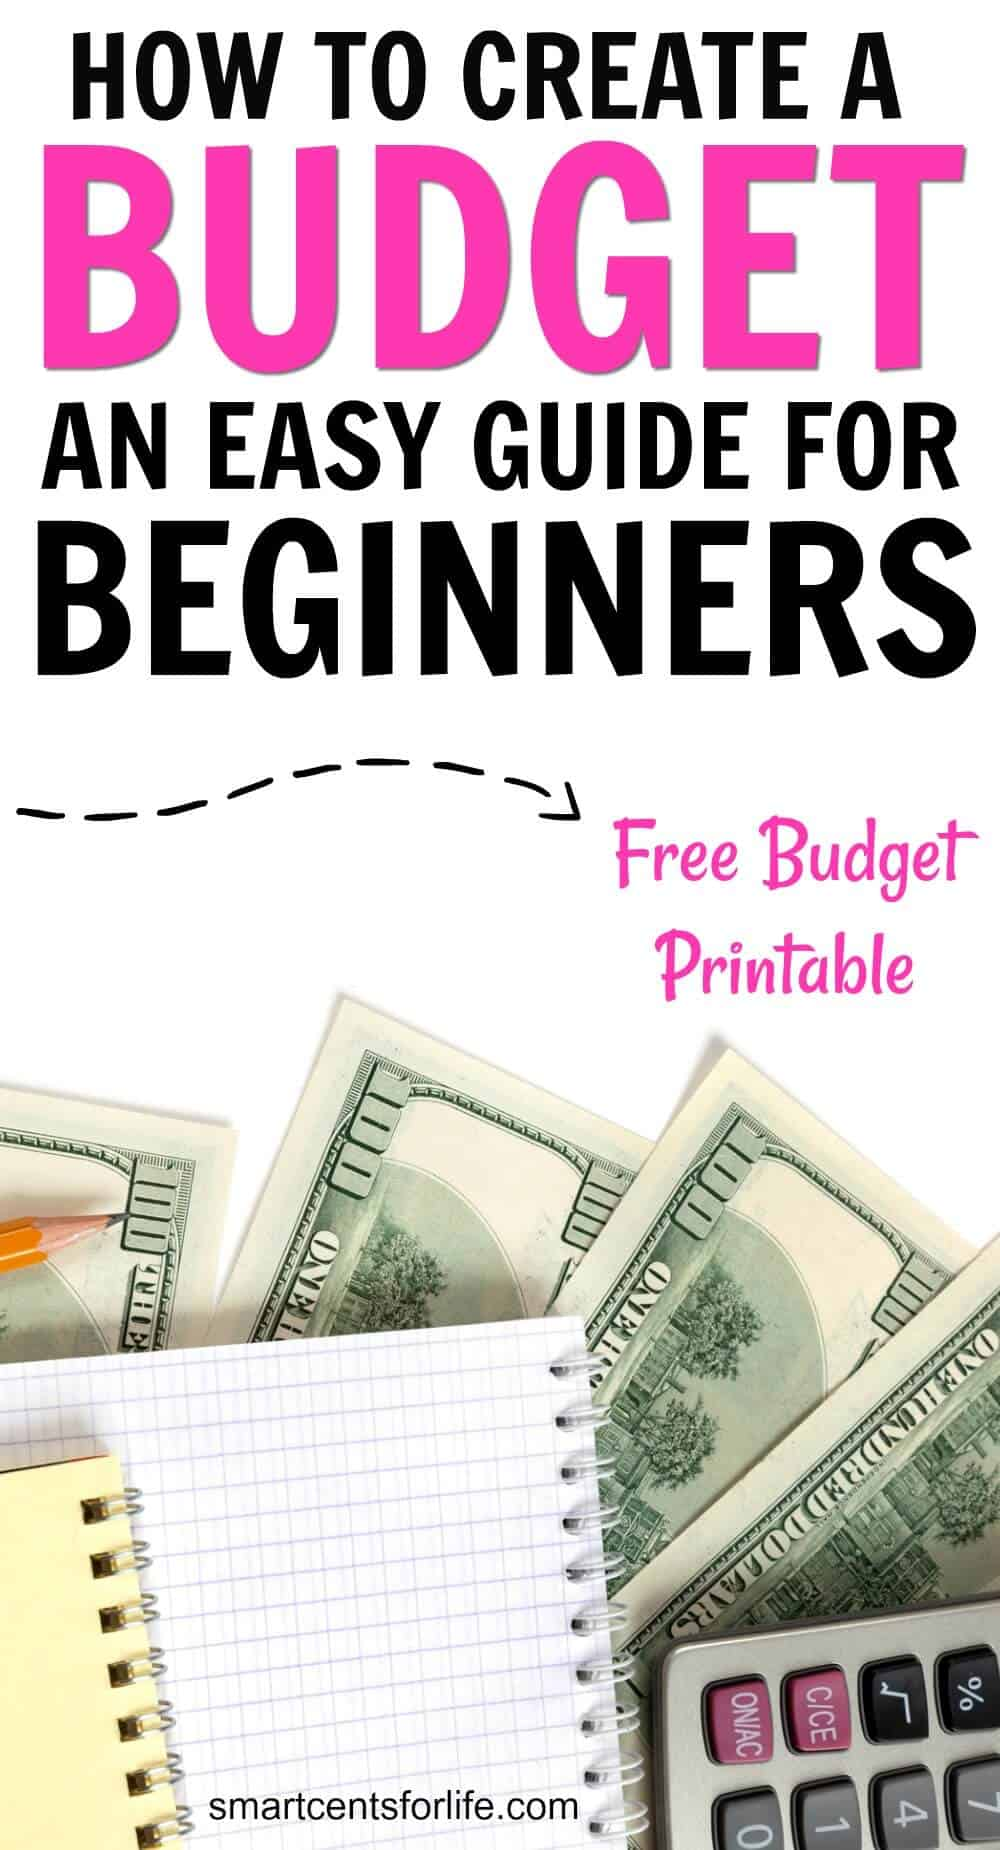 Learn how to create a budget and control your finances with this 4-step guide. Even if you've never budget before this easy budgeting guide will help you track your income, control your expenses and save more money! You can stop living paycheck to paycheck by creating a budget that works! FREE monthly budget worksheet printable included! How to budget for beginners, money saving tips, budgeting tips, Dave Ramsey, frugal living, envelope system #moneysavingtips #budget #personalfinance